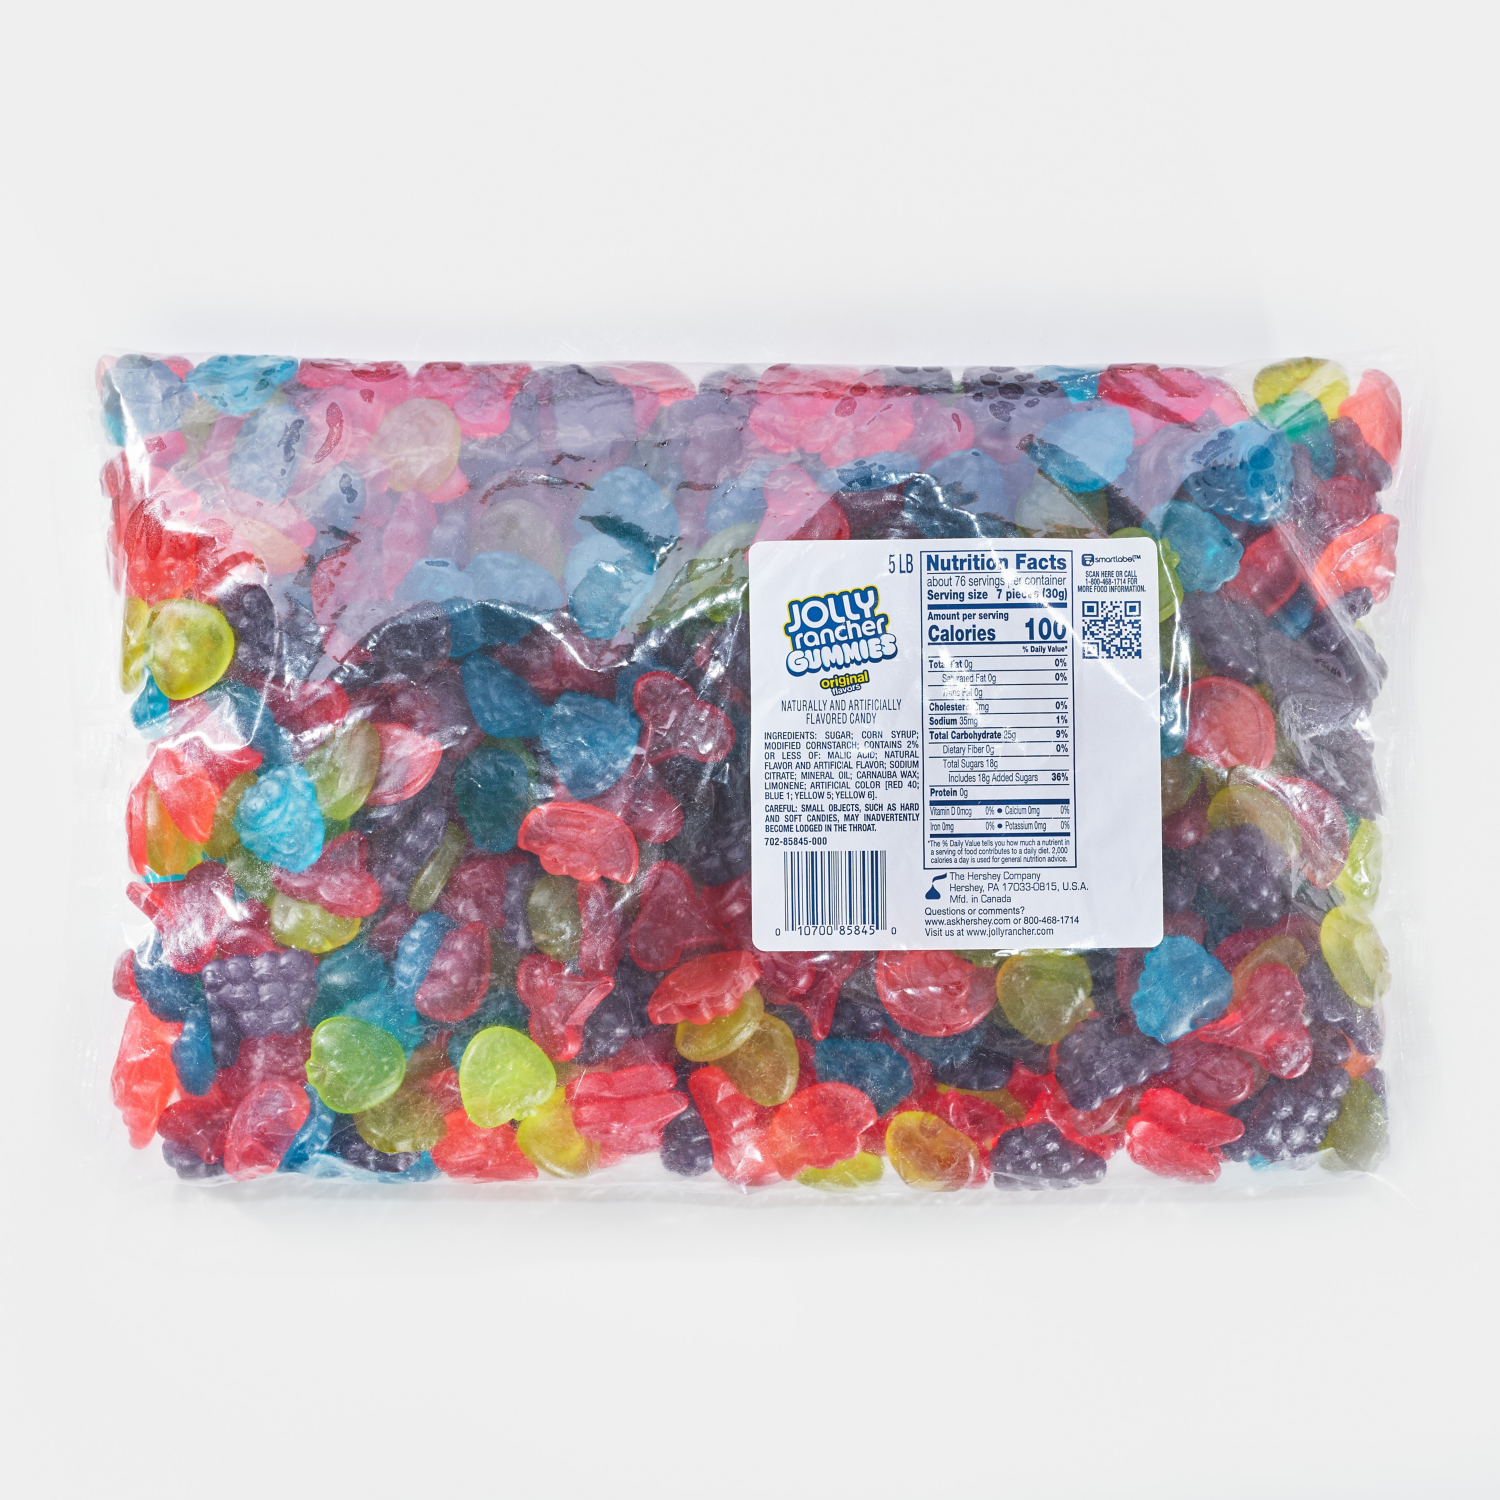 JOLLY RANCHER Gummies Original Flavors, 80 oz bag - Front of Package